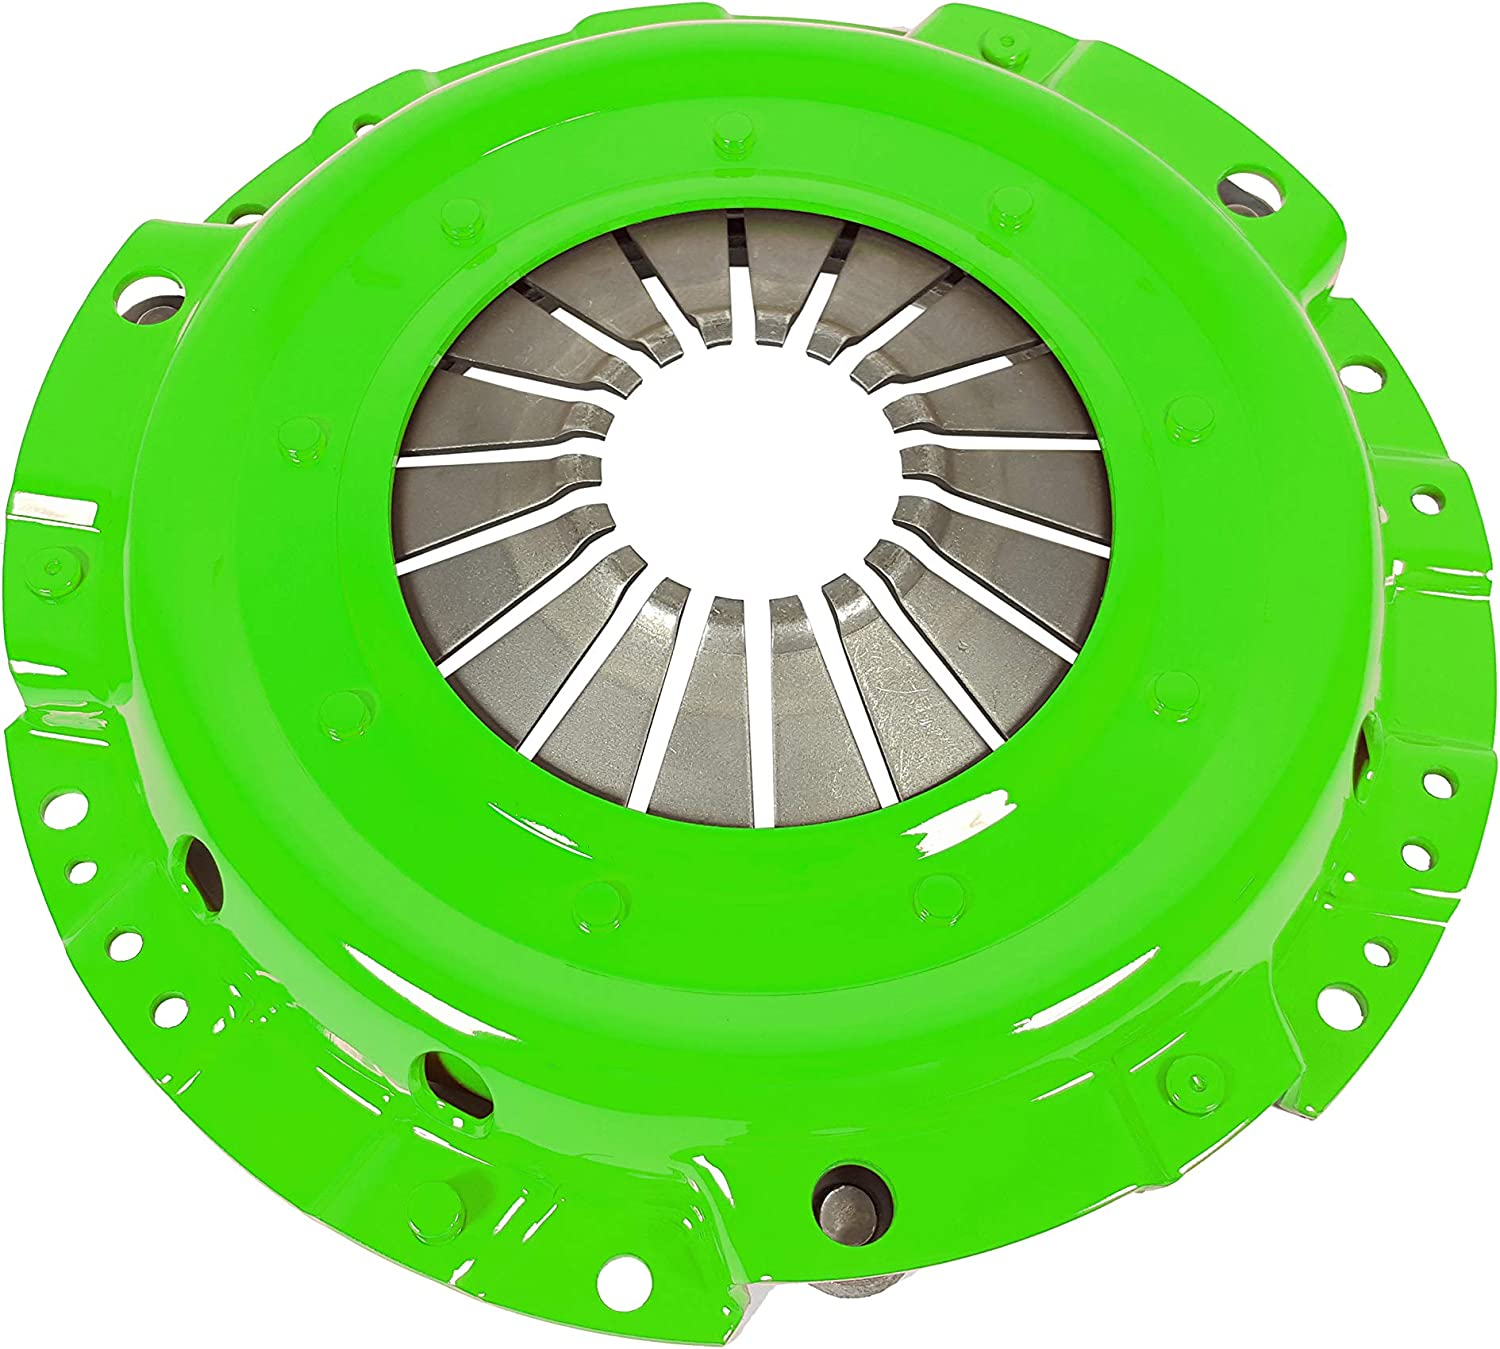 Stage 1 Clutch And Slave Kit Works With Chevy Cavalier Pontiac Base LS GT SE 2000-2002 2.2L l4 GAS OHV Naturally Aspirated